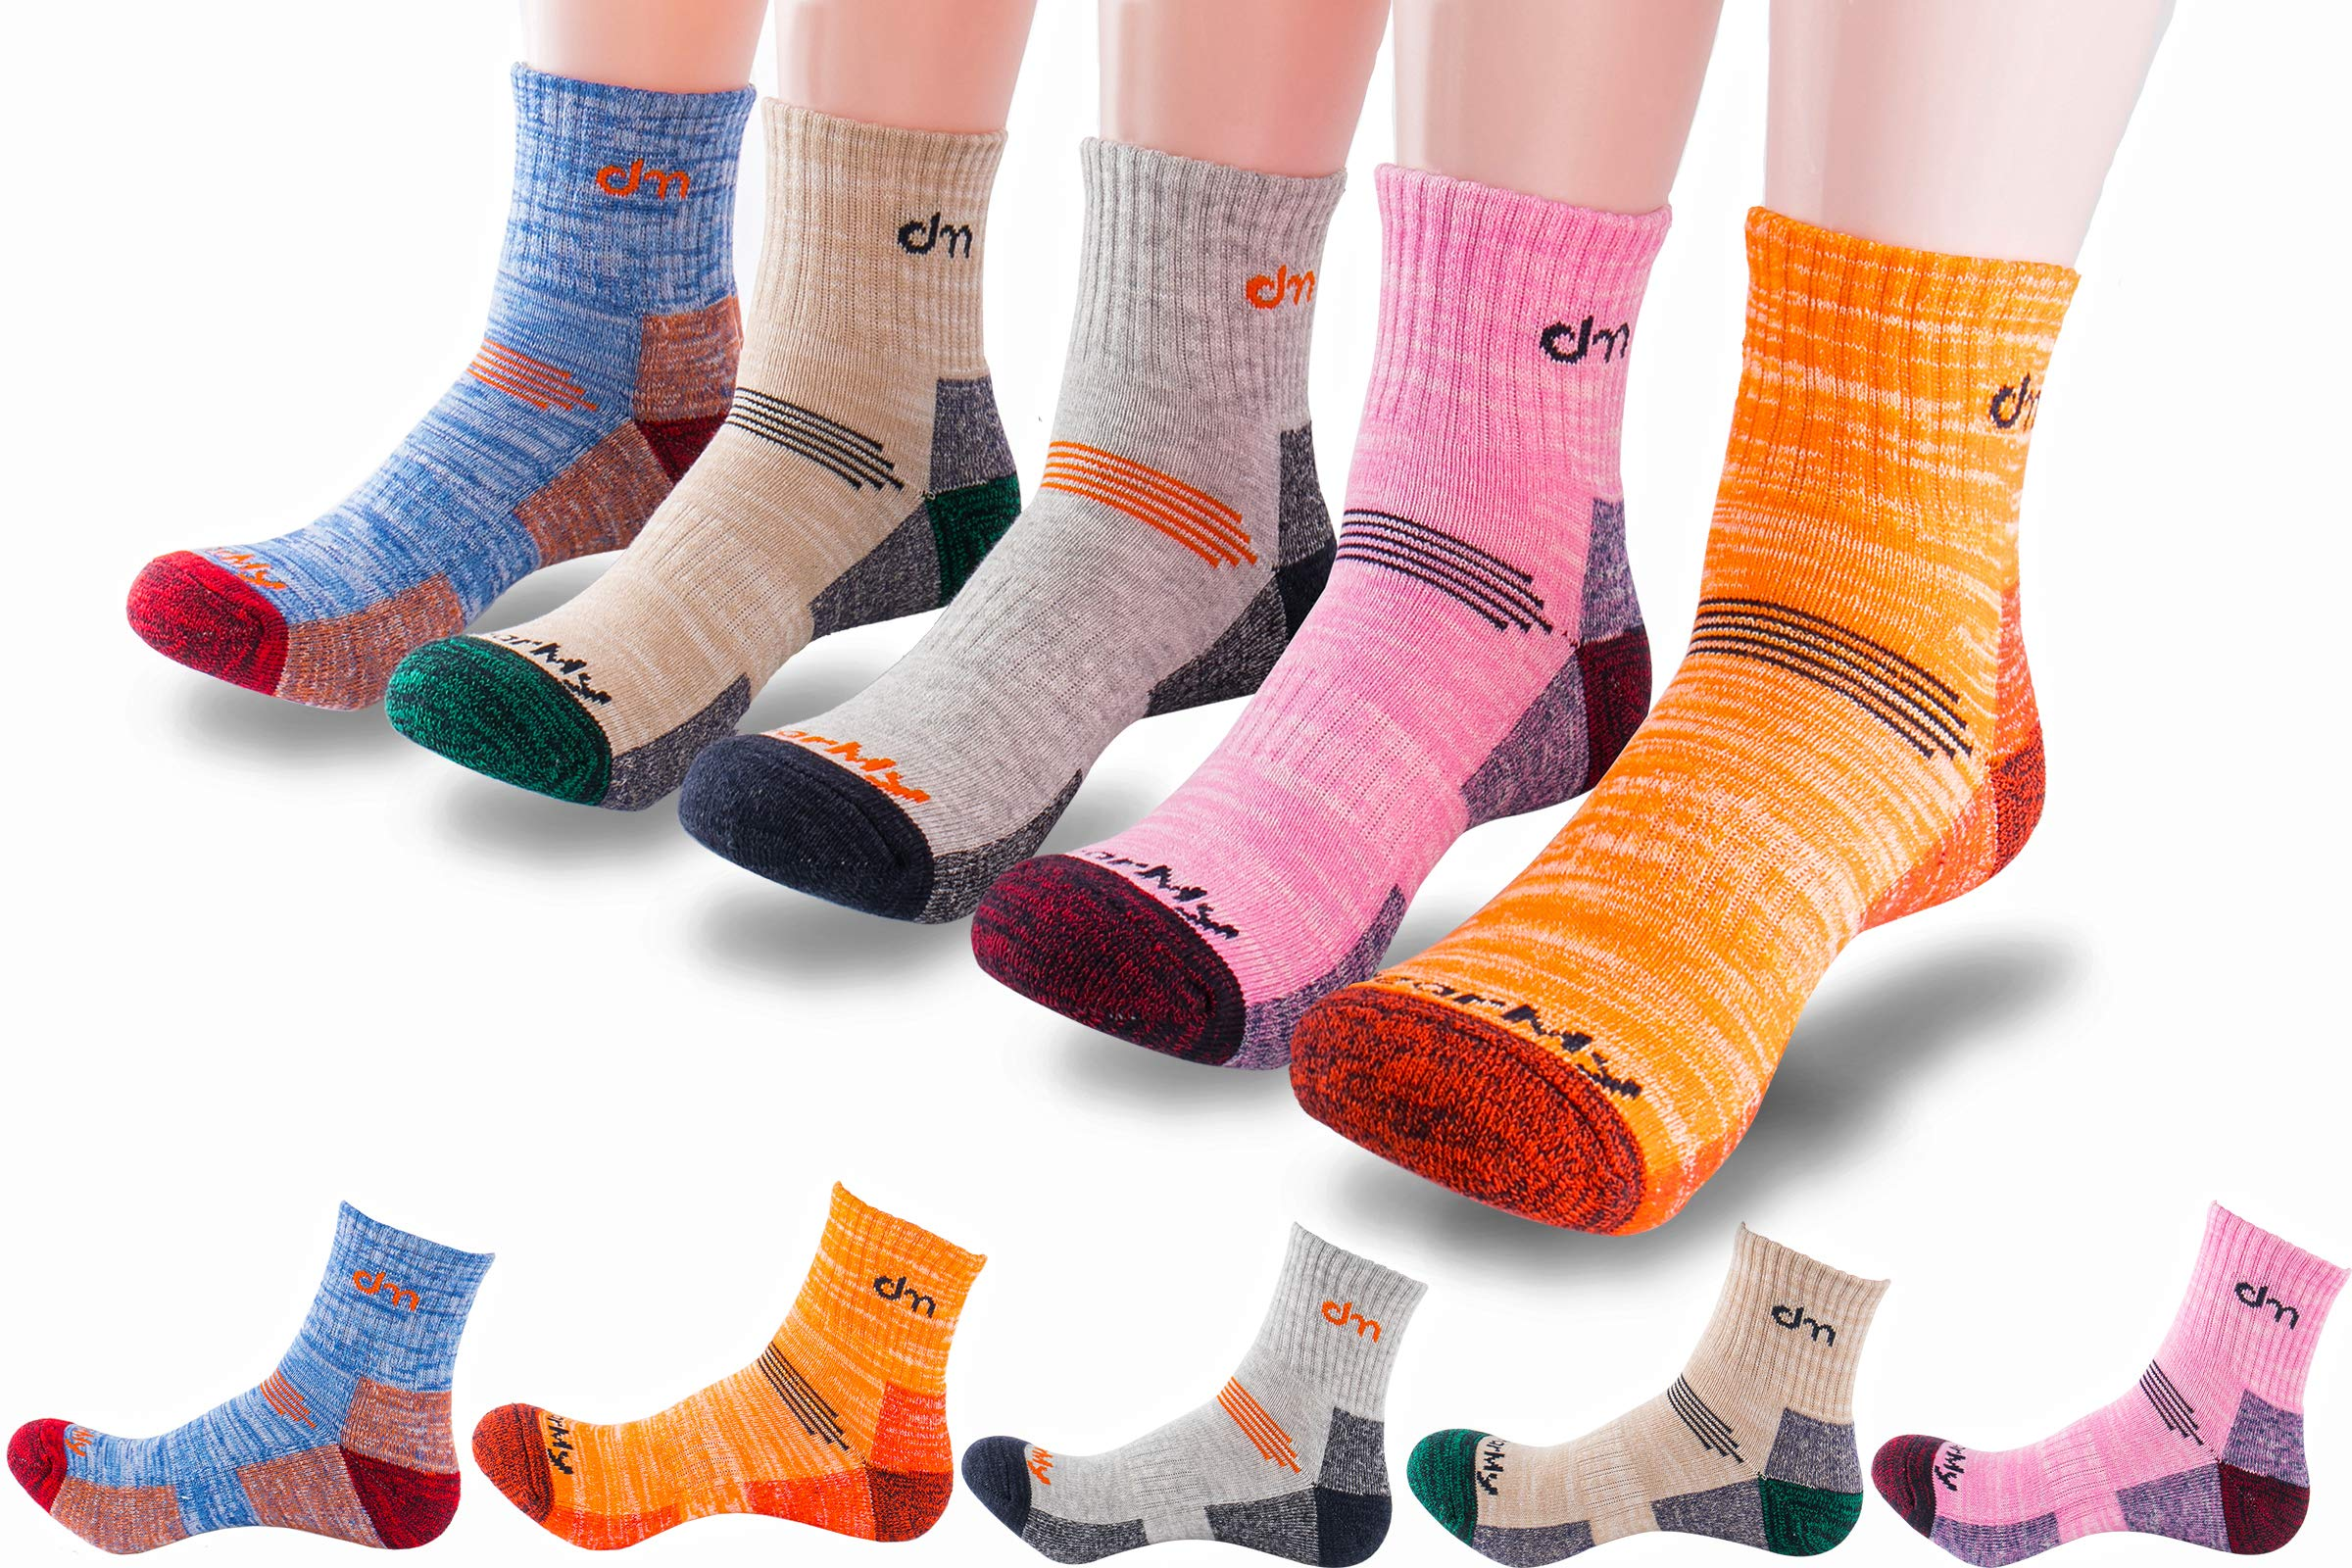 5Pack of Women's Multi Performance Mid Cushion Outdoor Hiking Ankle Socks |Athletic, Running| Moisture Wicking | Year Round (Small (Shoe size 6-8 US), 5pack-Orange/Grey/Beige/Blue/Pink) by DEARMY